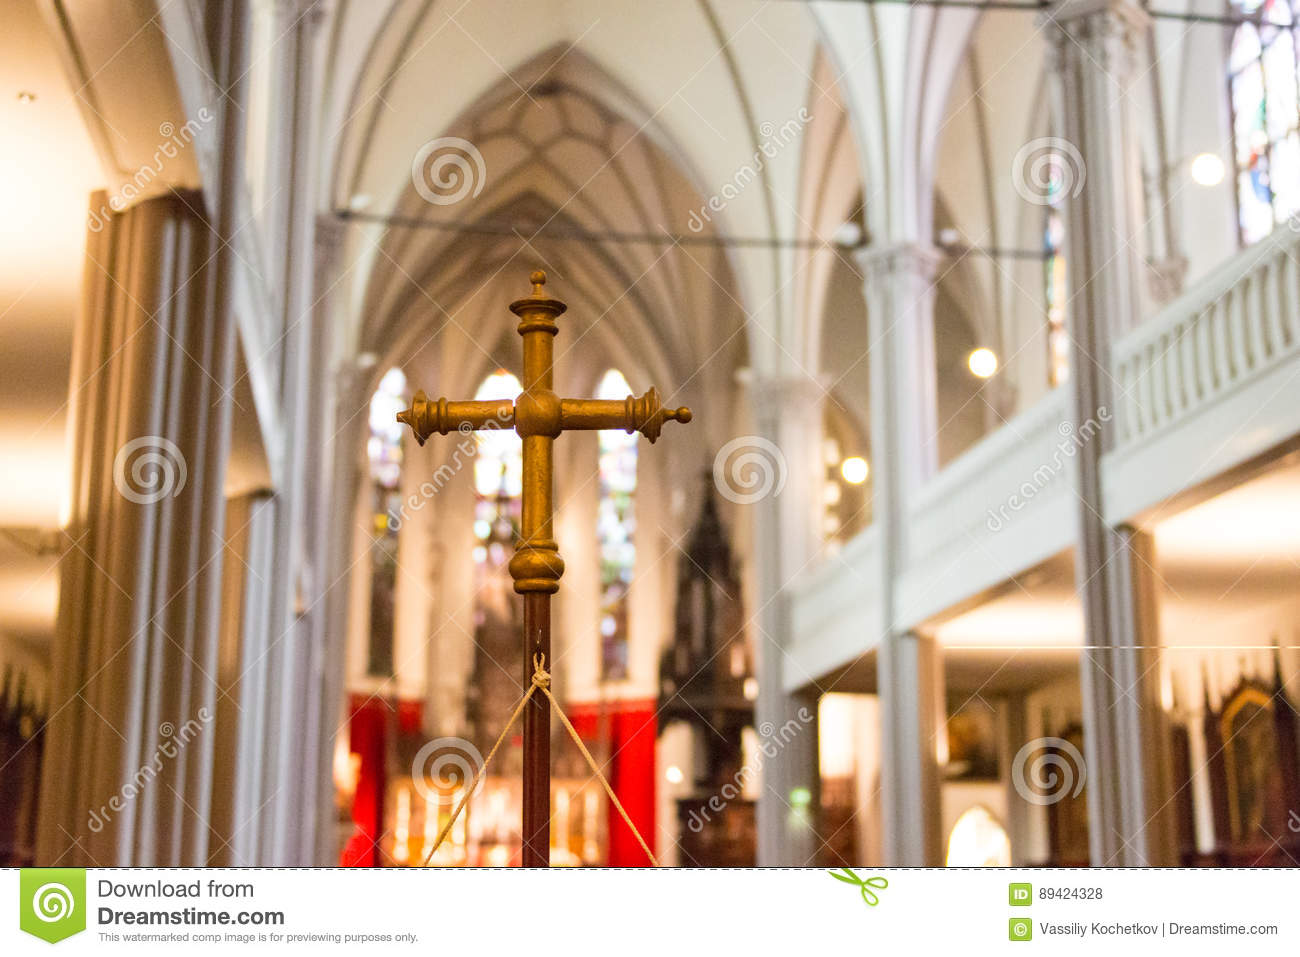 DINKELSBUHL, GERMANY - OCTOBER 02 2016: The interior of the Church of St. George in Dinkelsbuhl, Bavaria. It is a